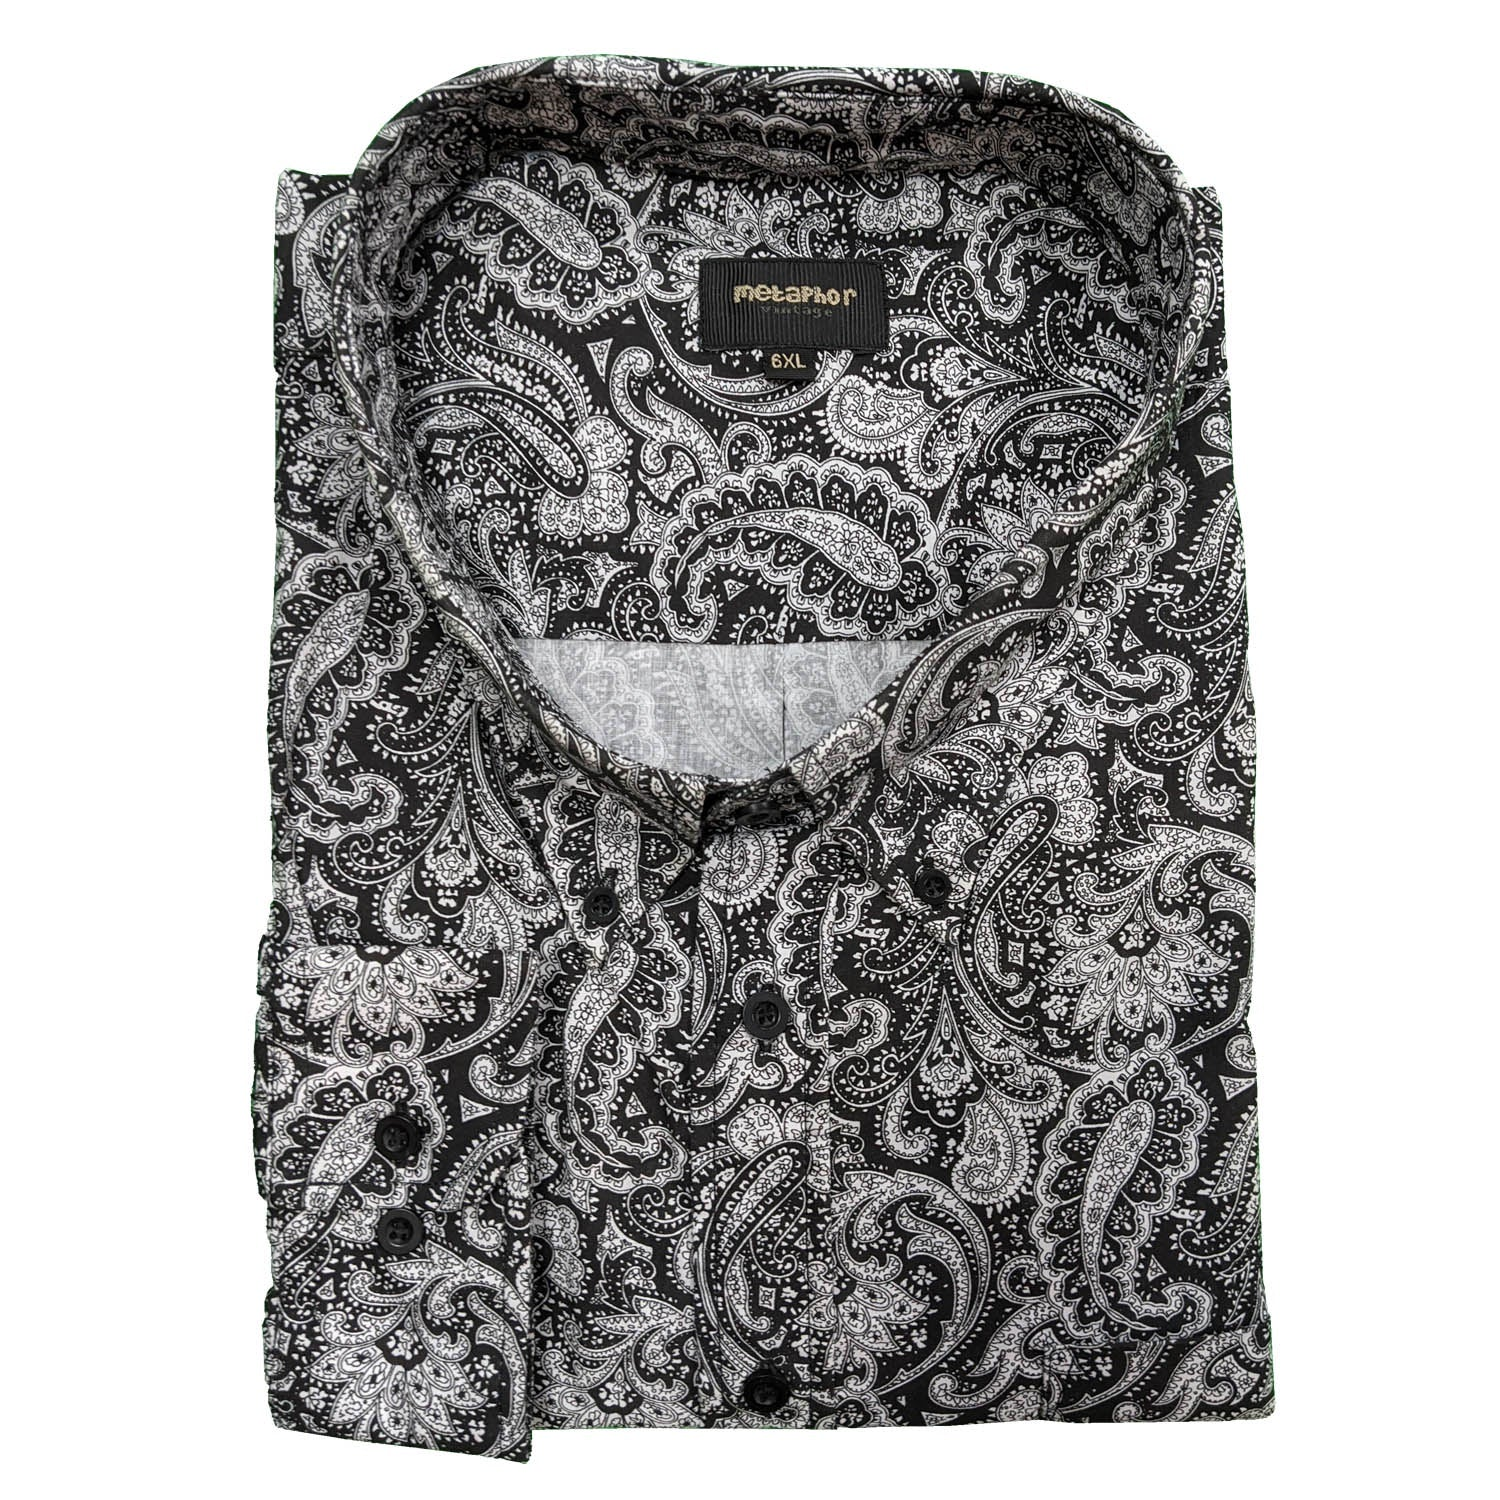 Metaphor L/S Paisley Shirt - 15494 - Black / White 1